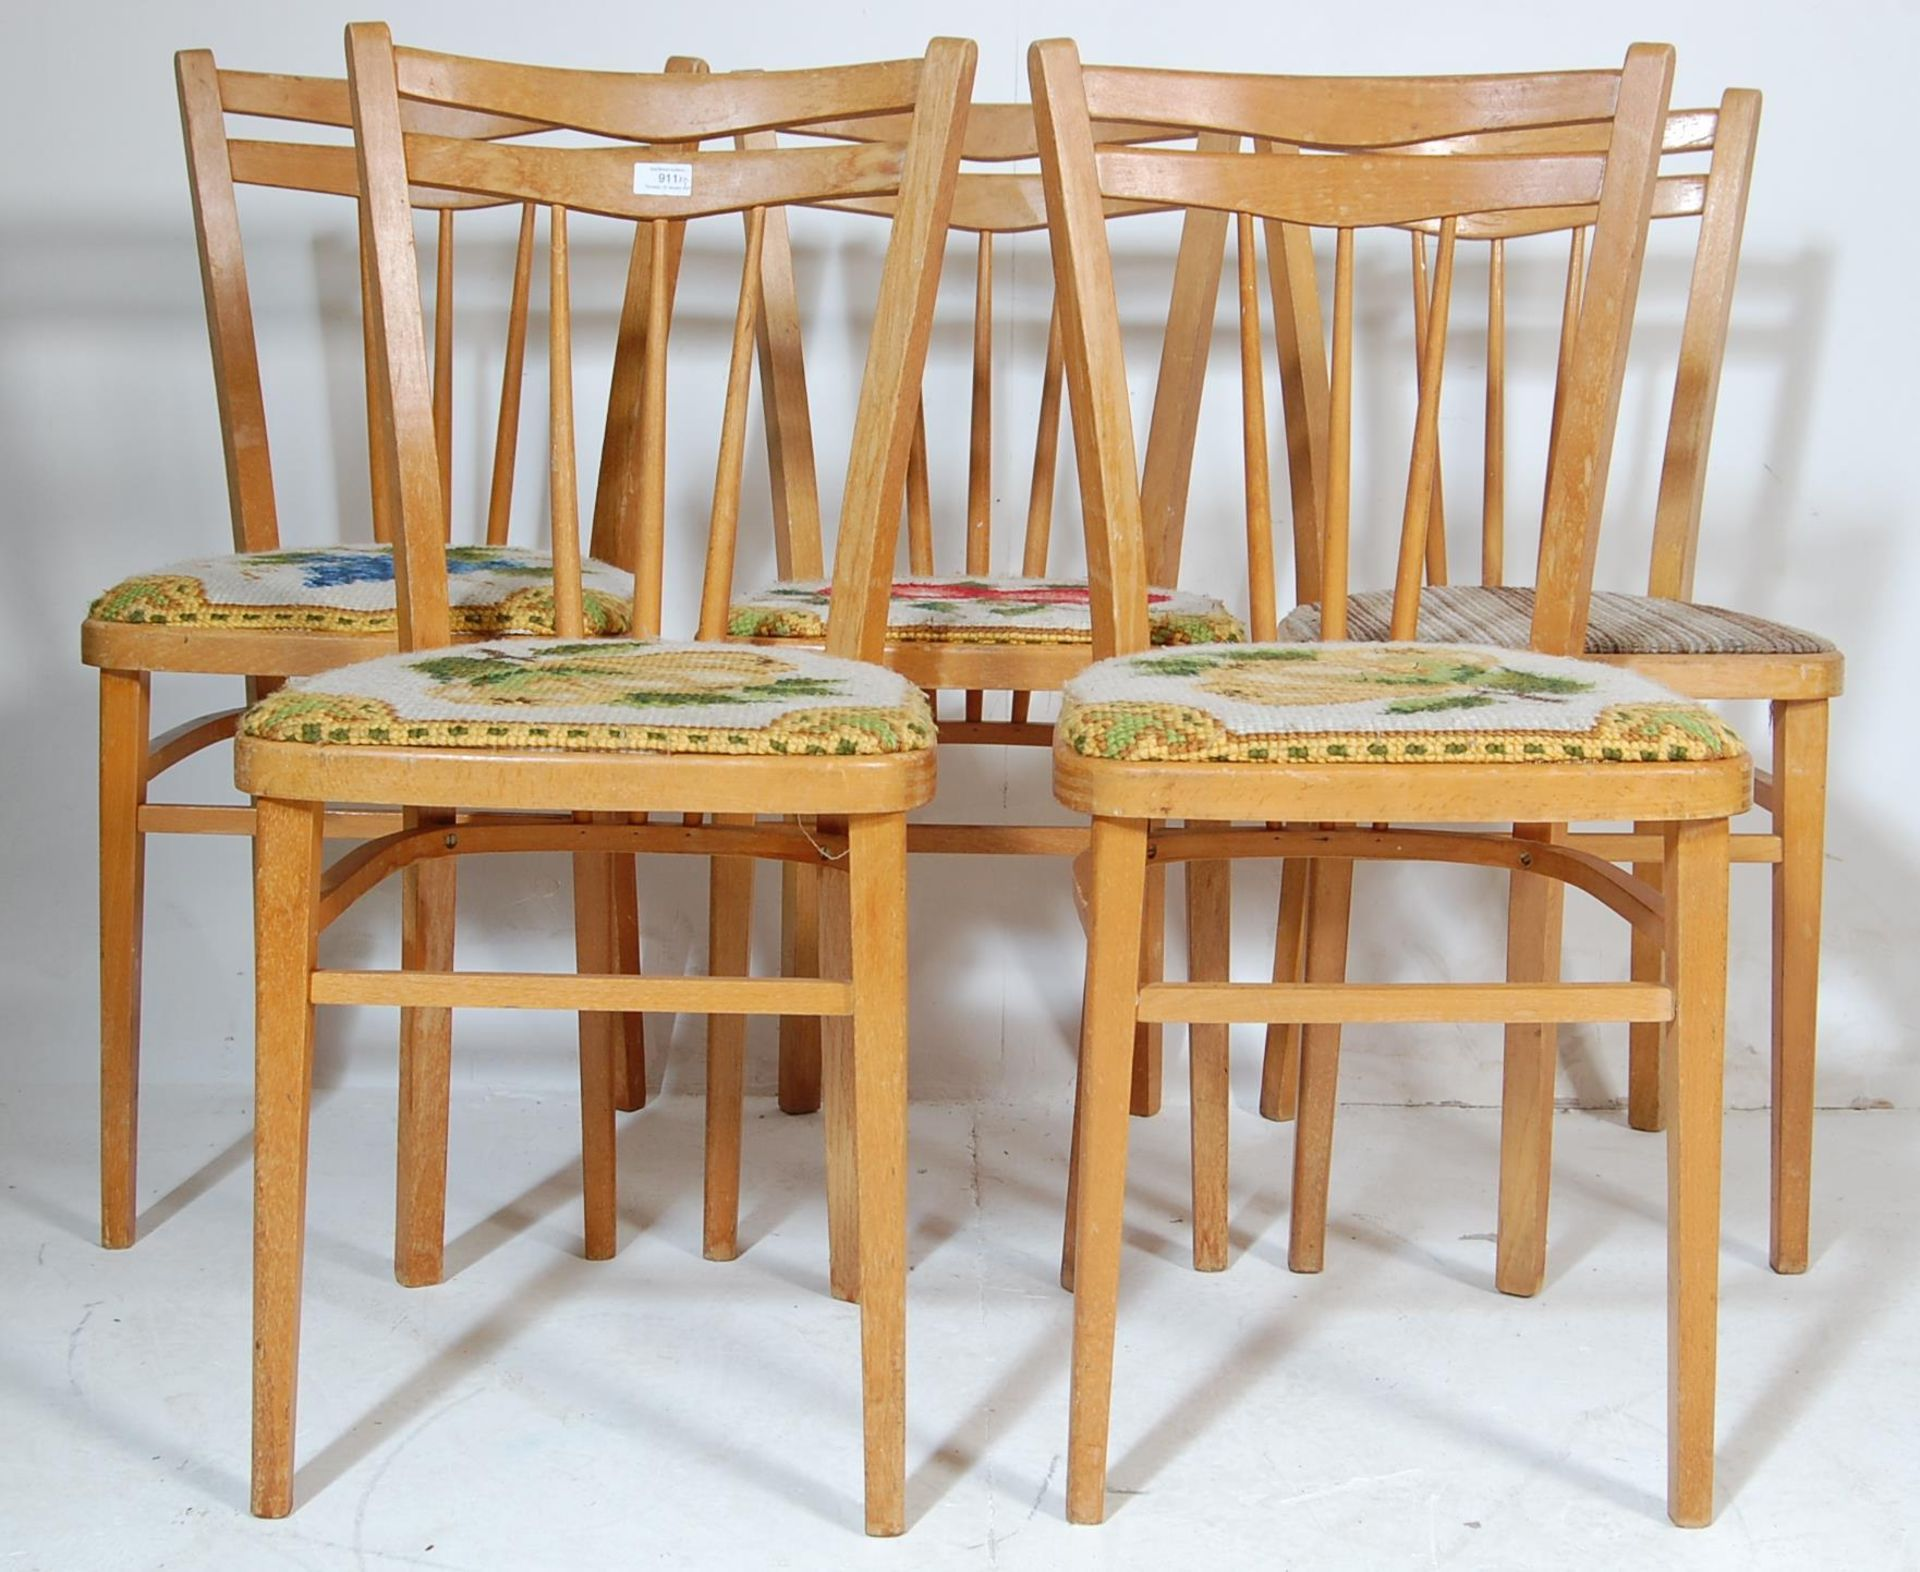 FIVE RETRO 20TH CENTURY DINING CHAIRS / KITCHEN CHAIRS